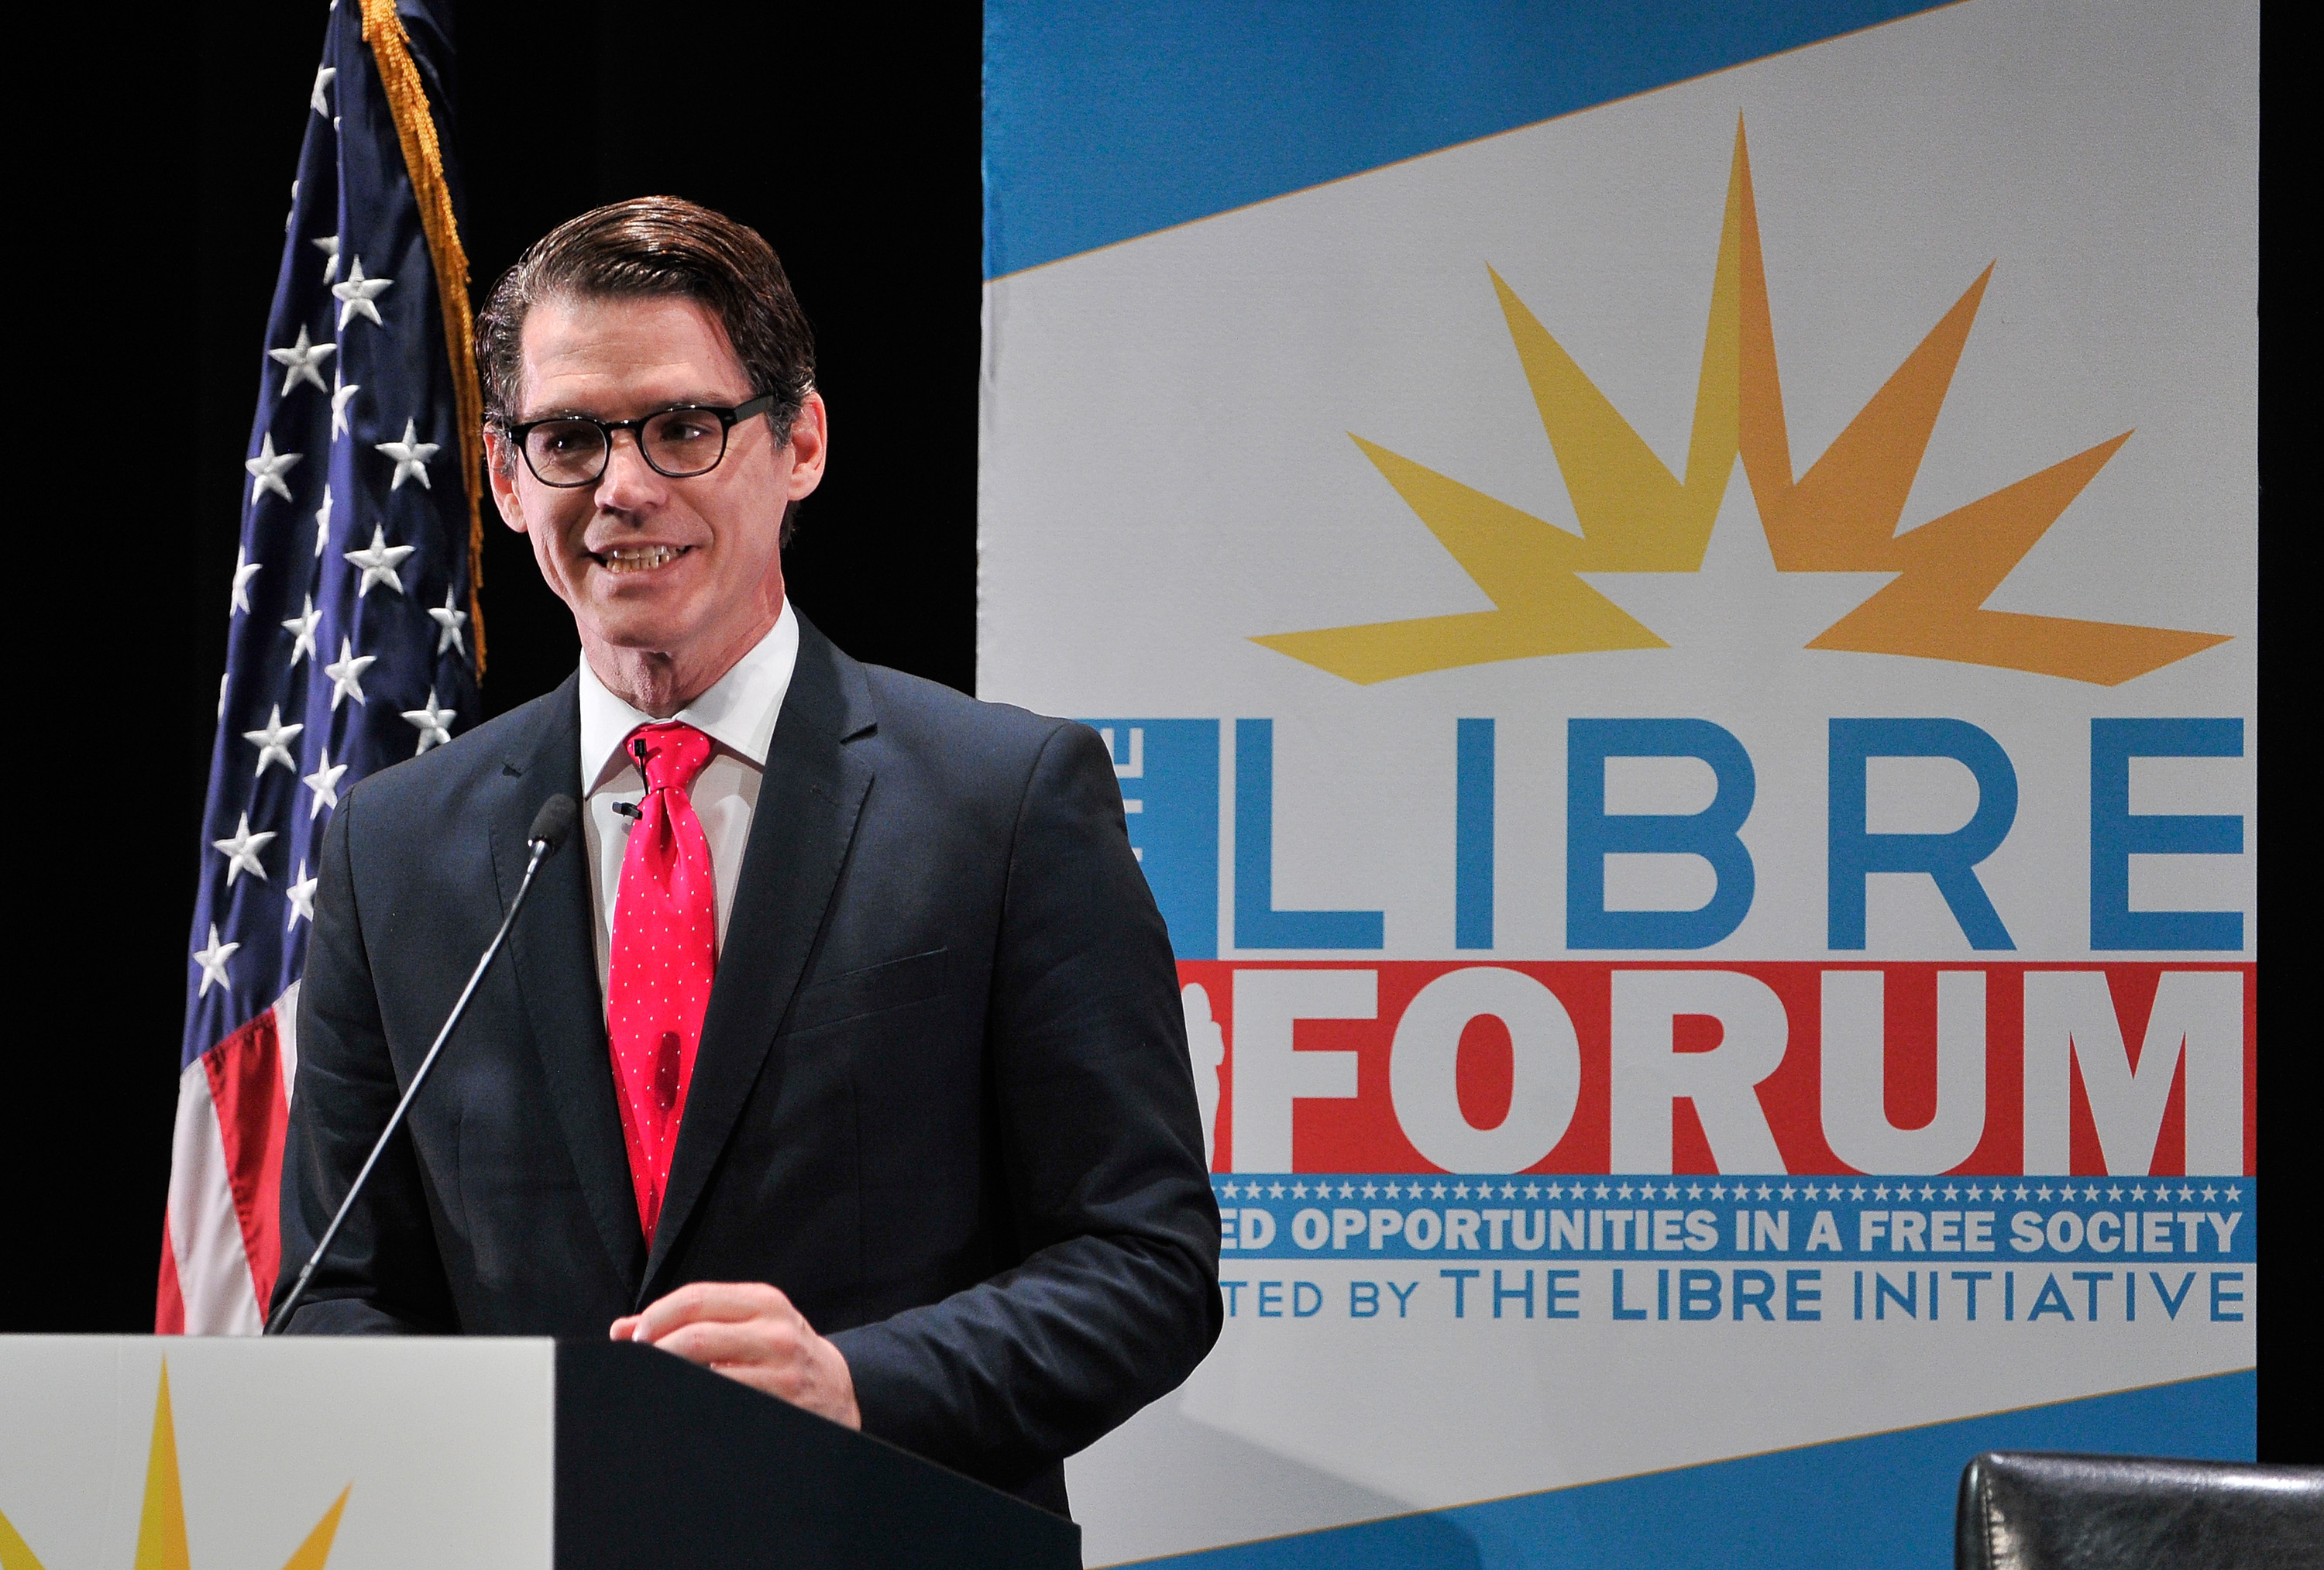 The LIBRE Initiative executive director Daniel Garza speaks during the LIBRE Initiative Fourm at the College of Southern Nevada on October 21, 2015 in North Las Vegas, Nevada.